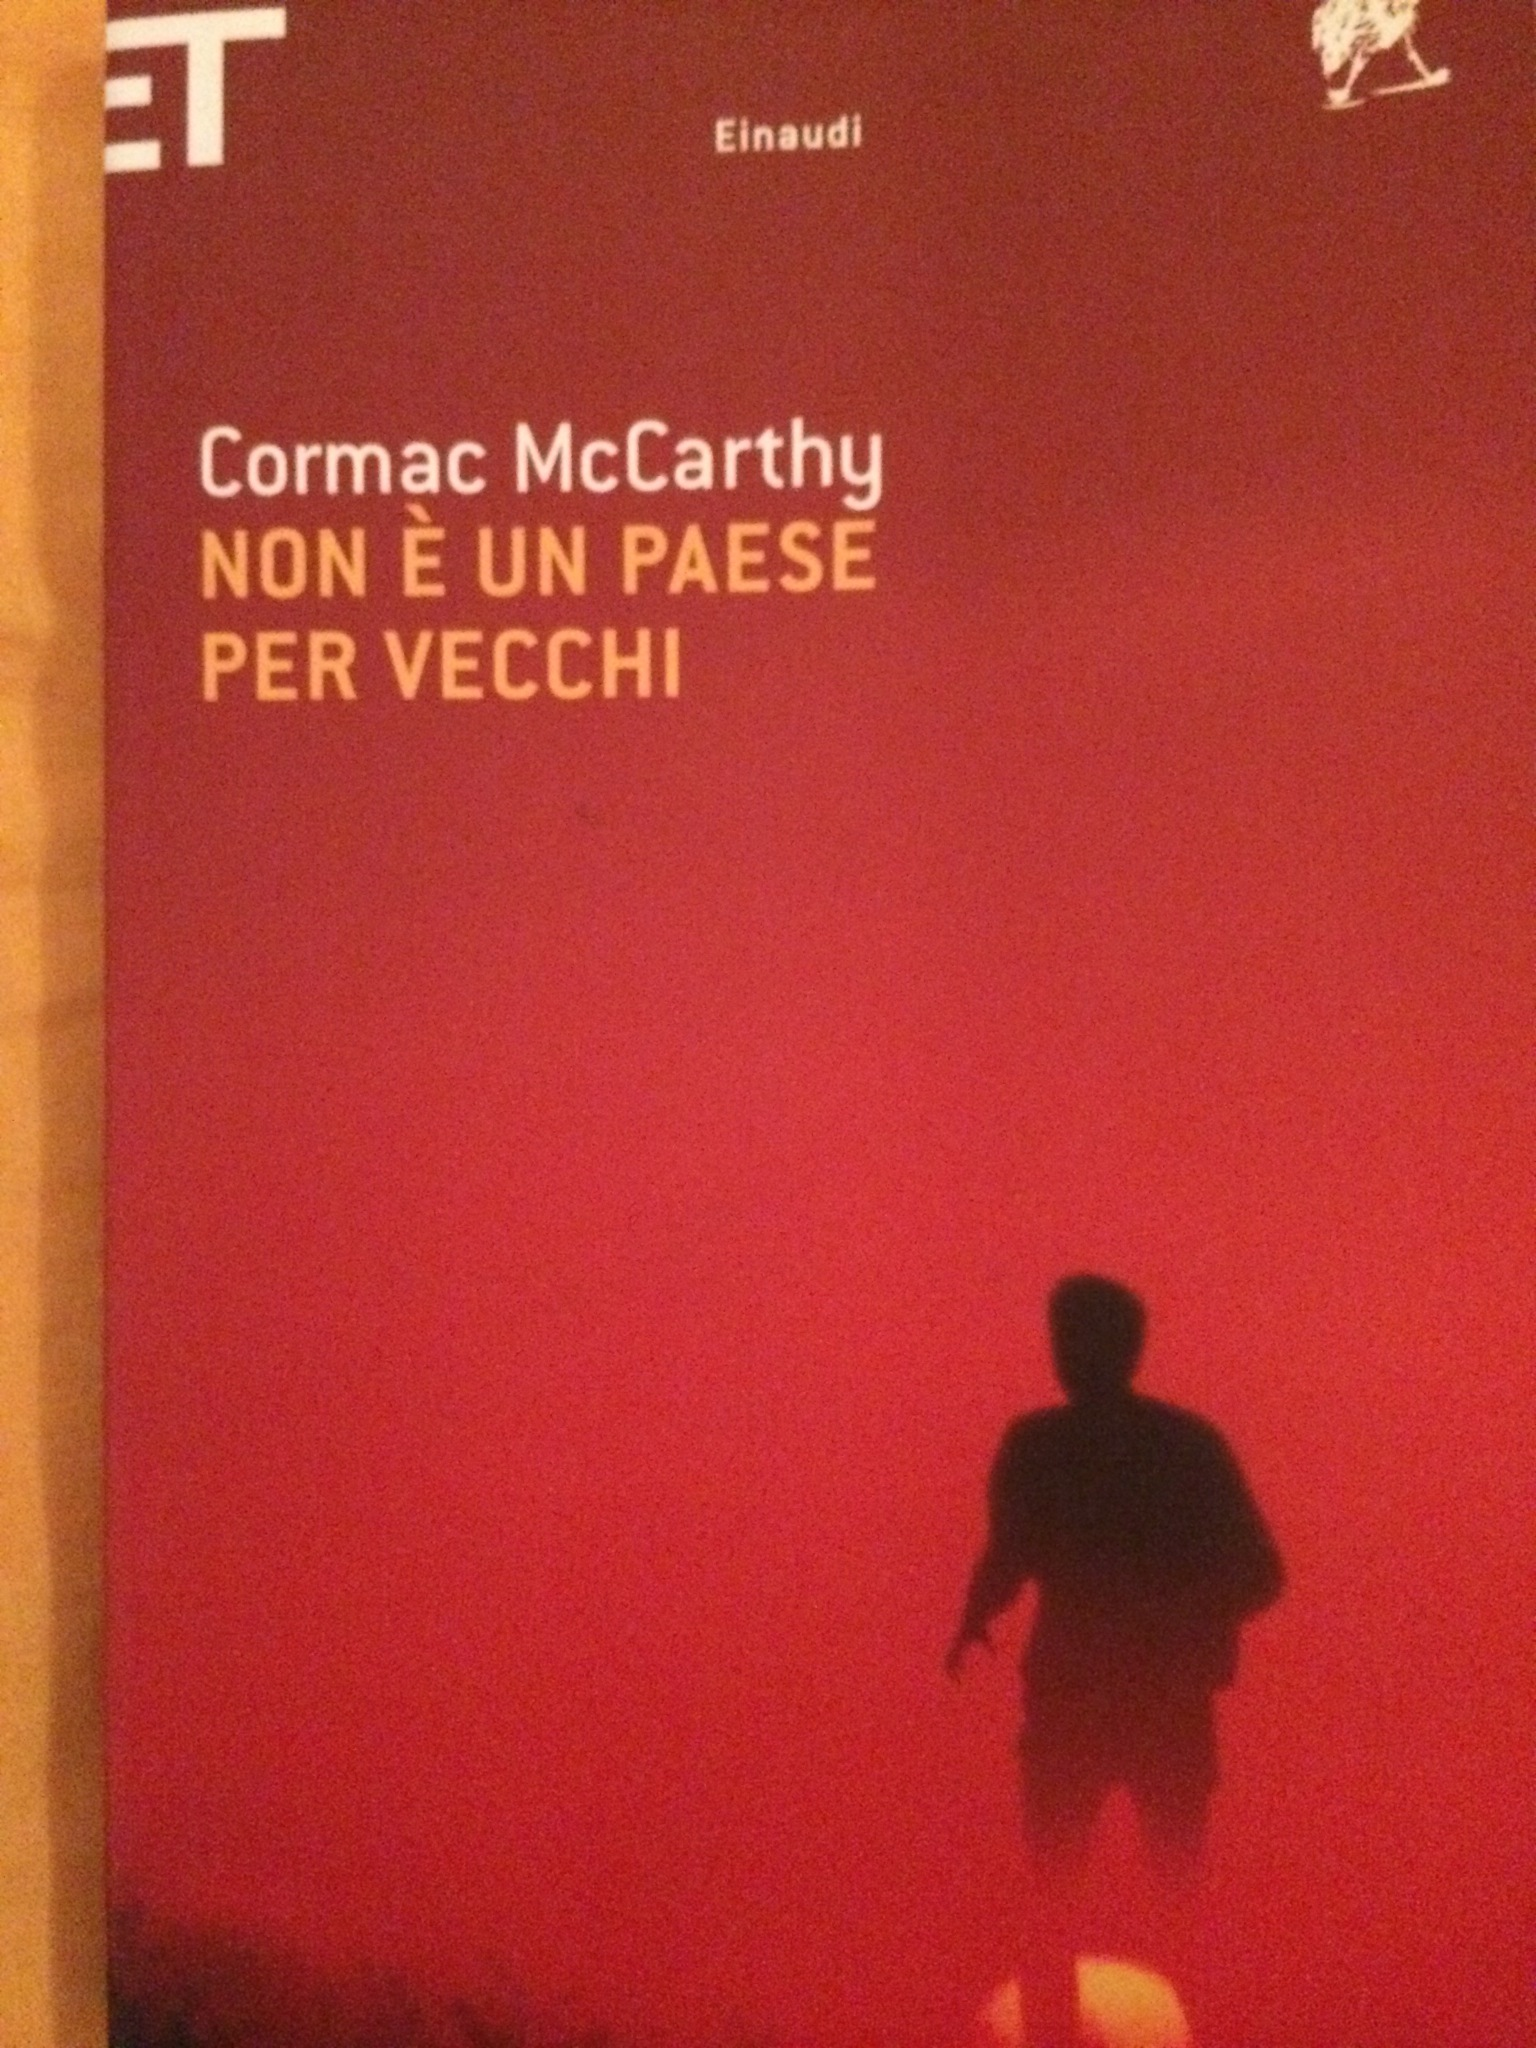 Cormac Mccarthy Libros Fratelli Coen Angelo Radica